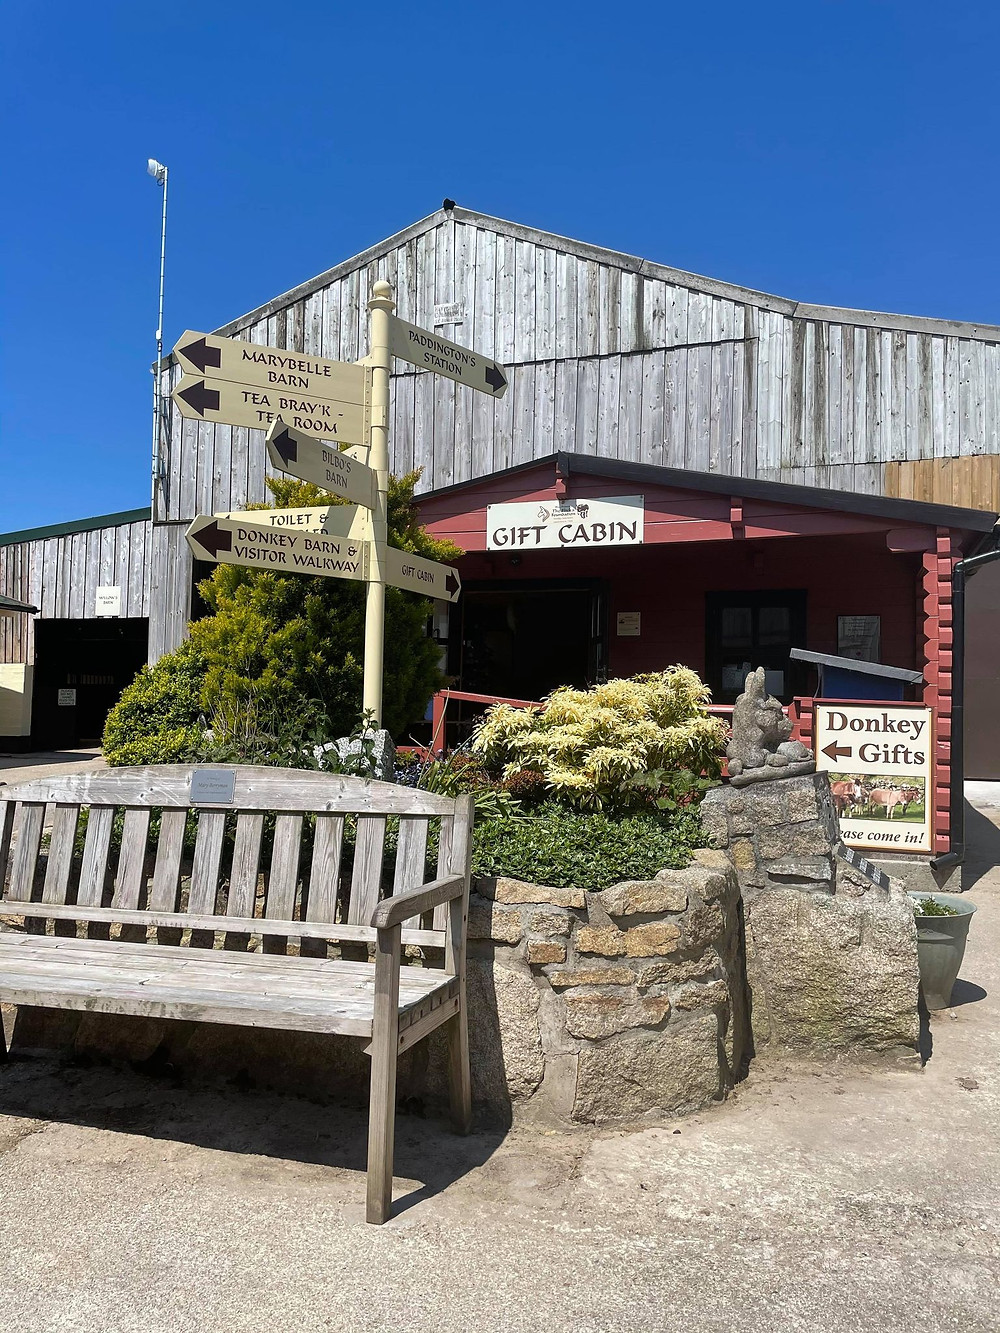 Outside view of the gift shop, with a bench and sign posts pointing you to the right directions